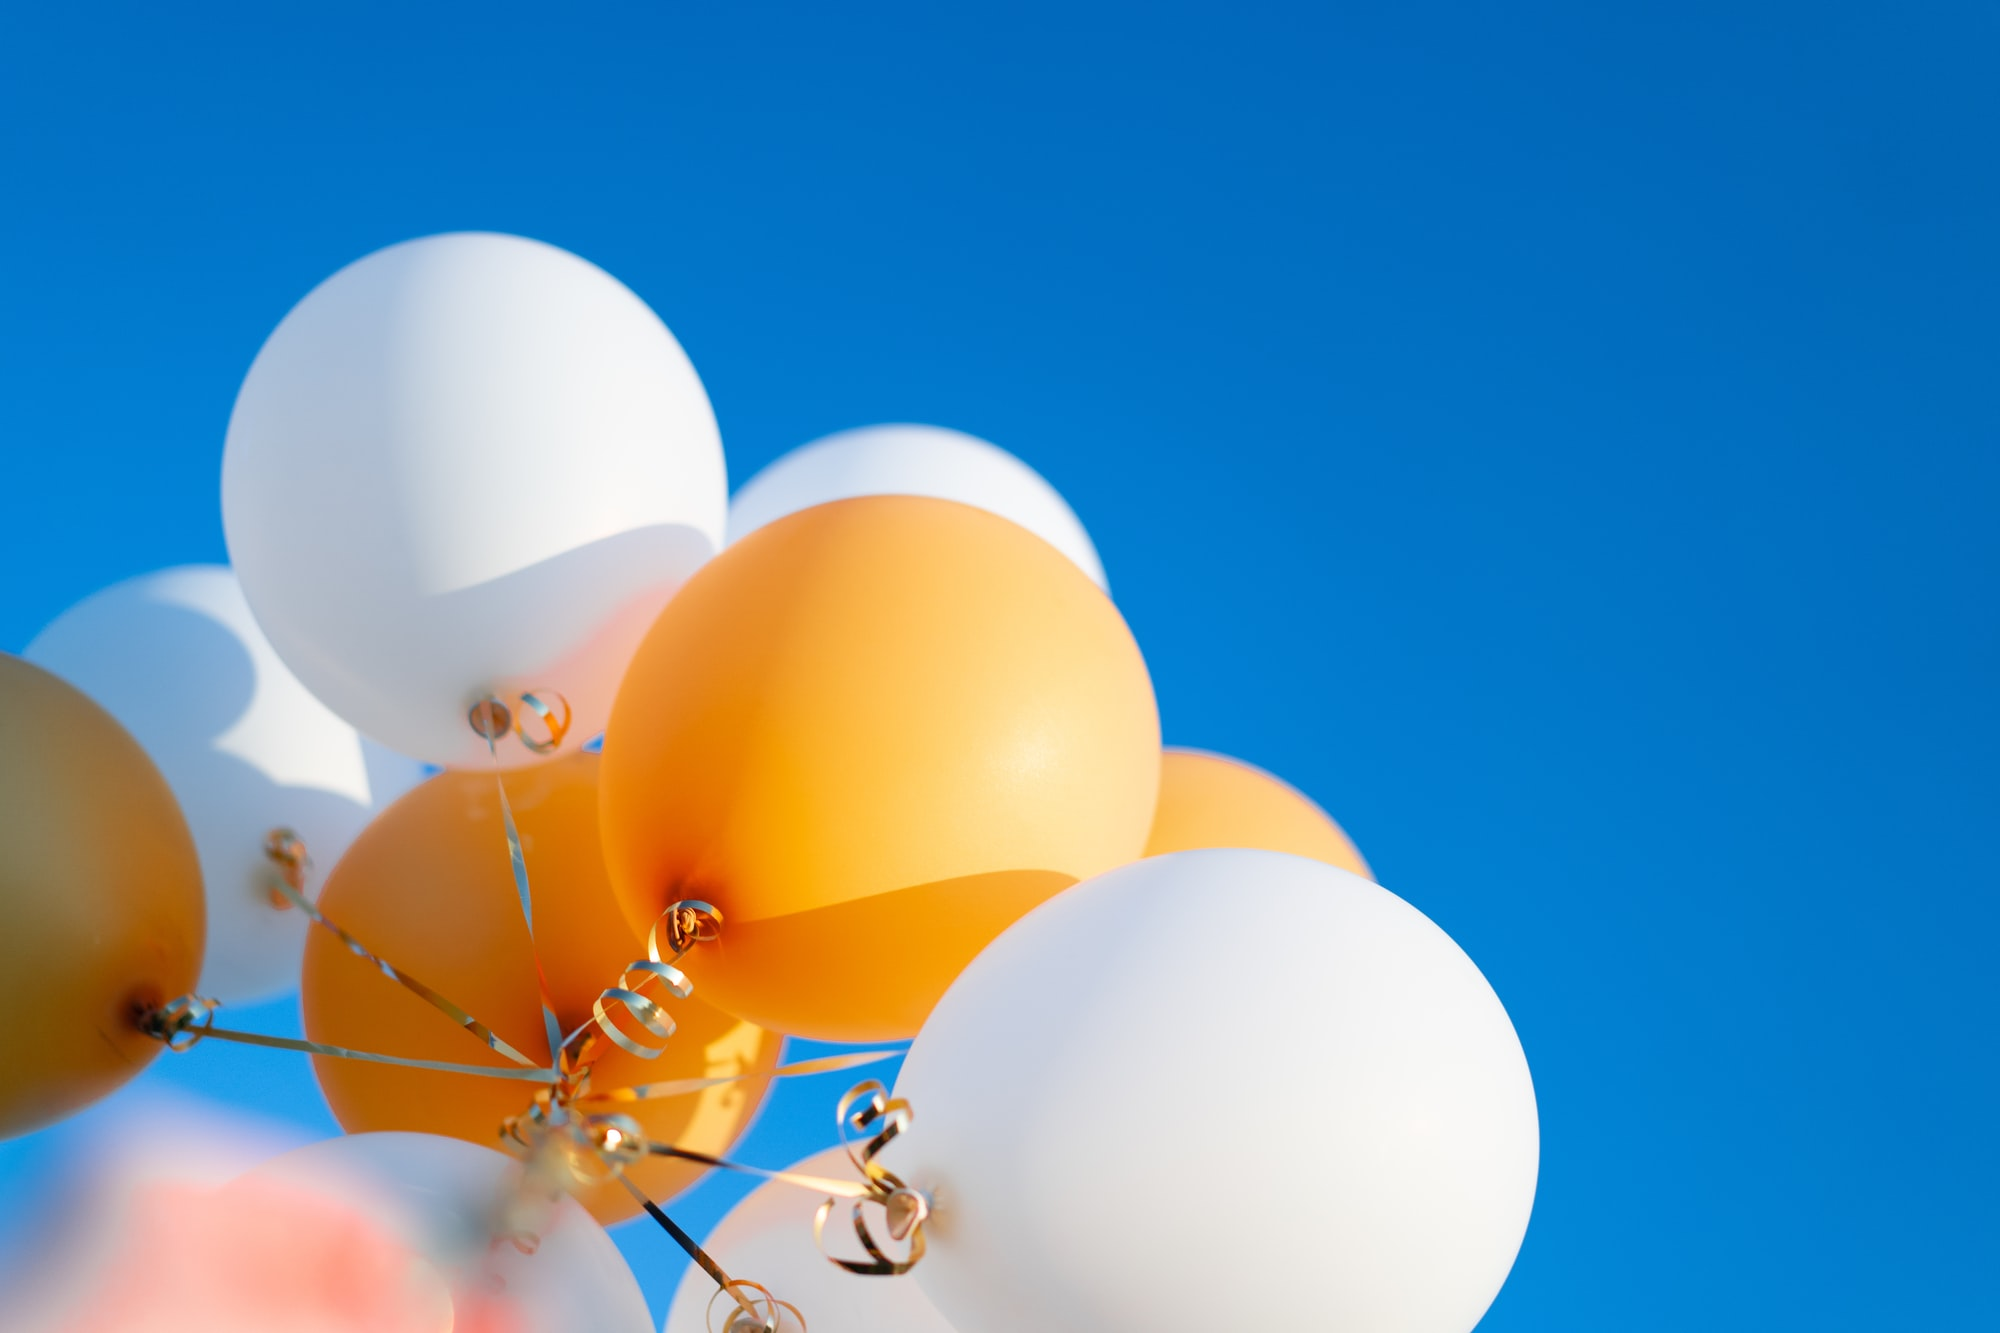 Balloons and Blue Sky